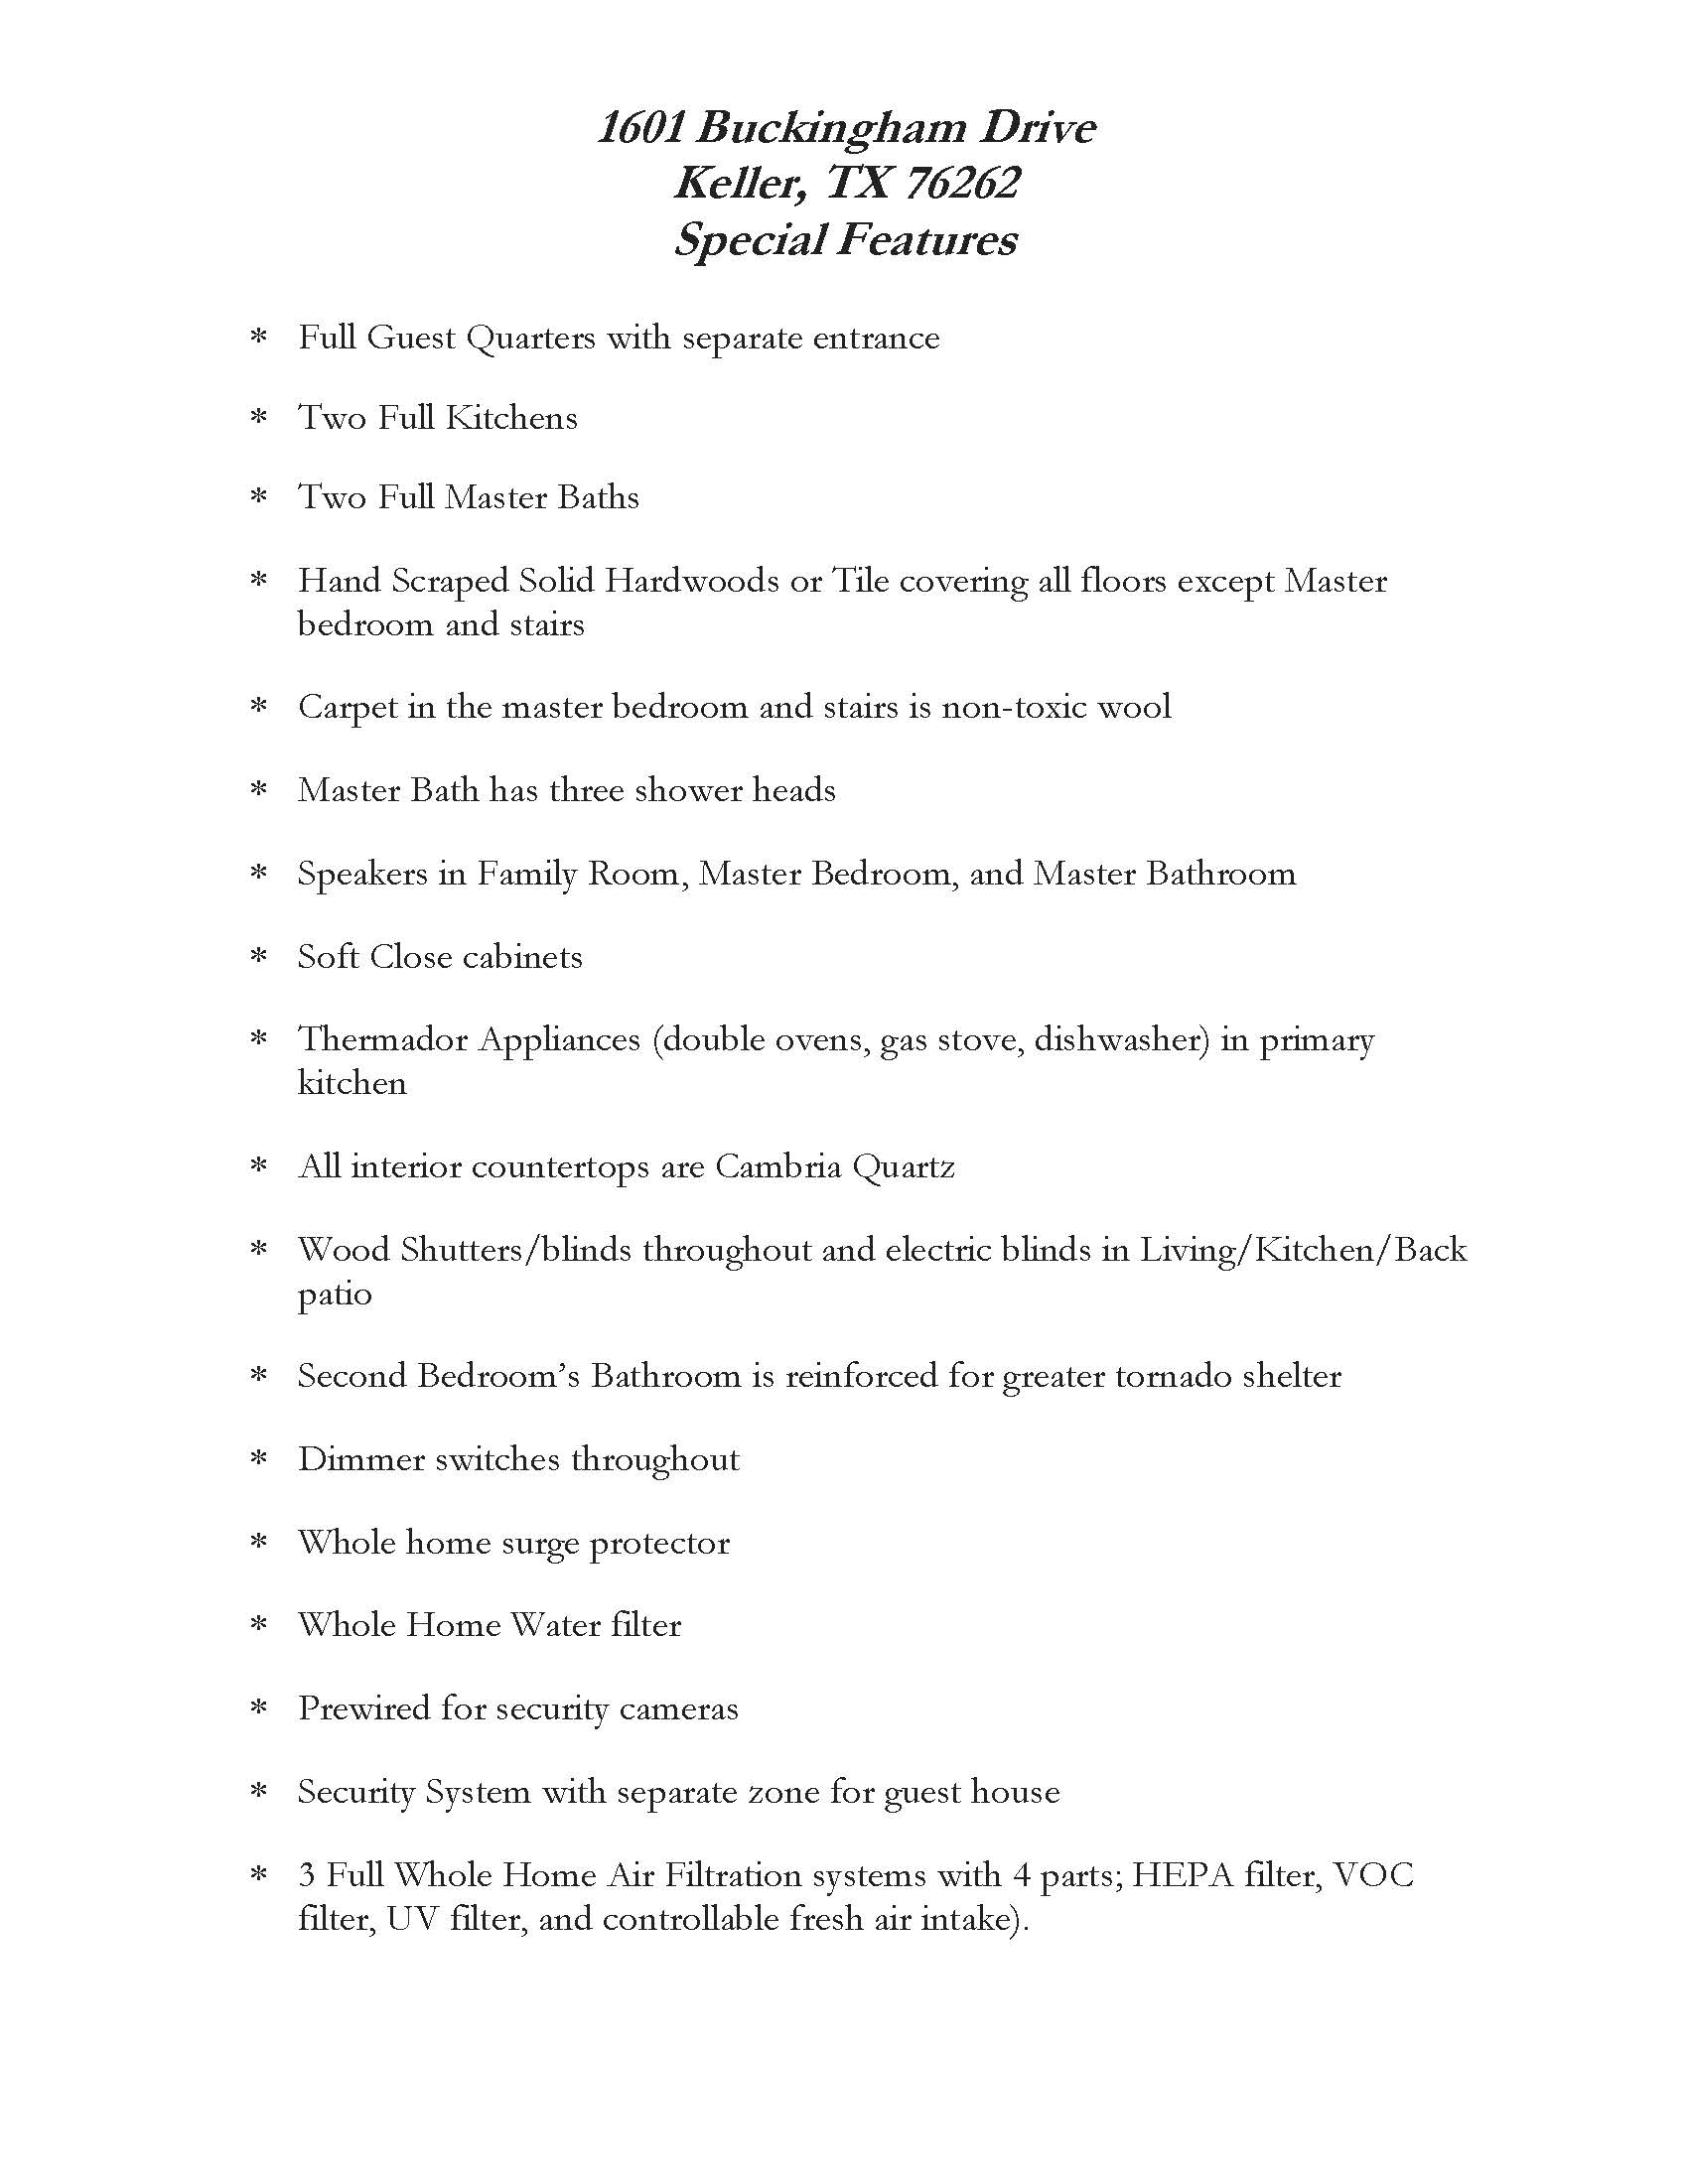 Special Features List - Buckingham Dr. Page 1